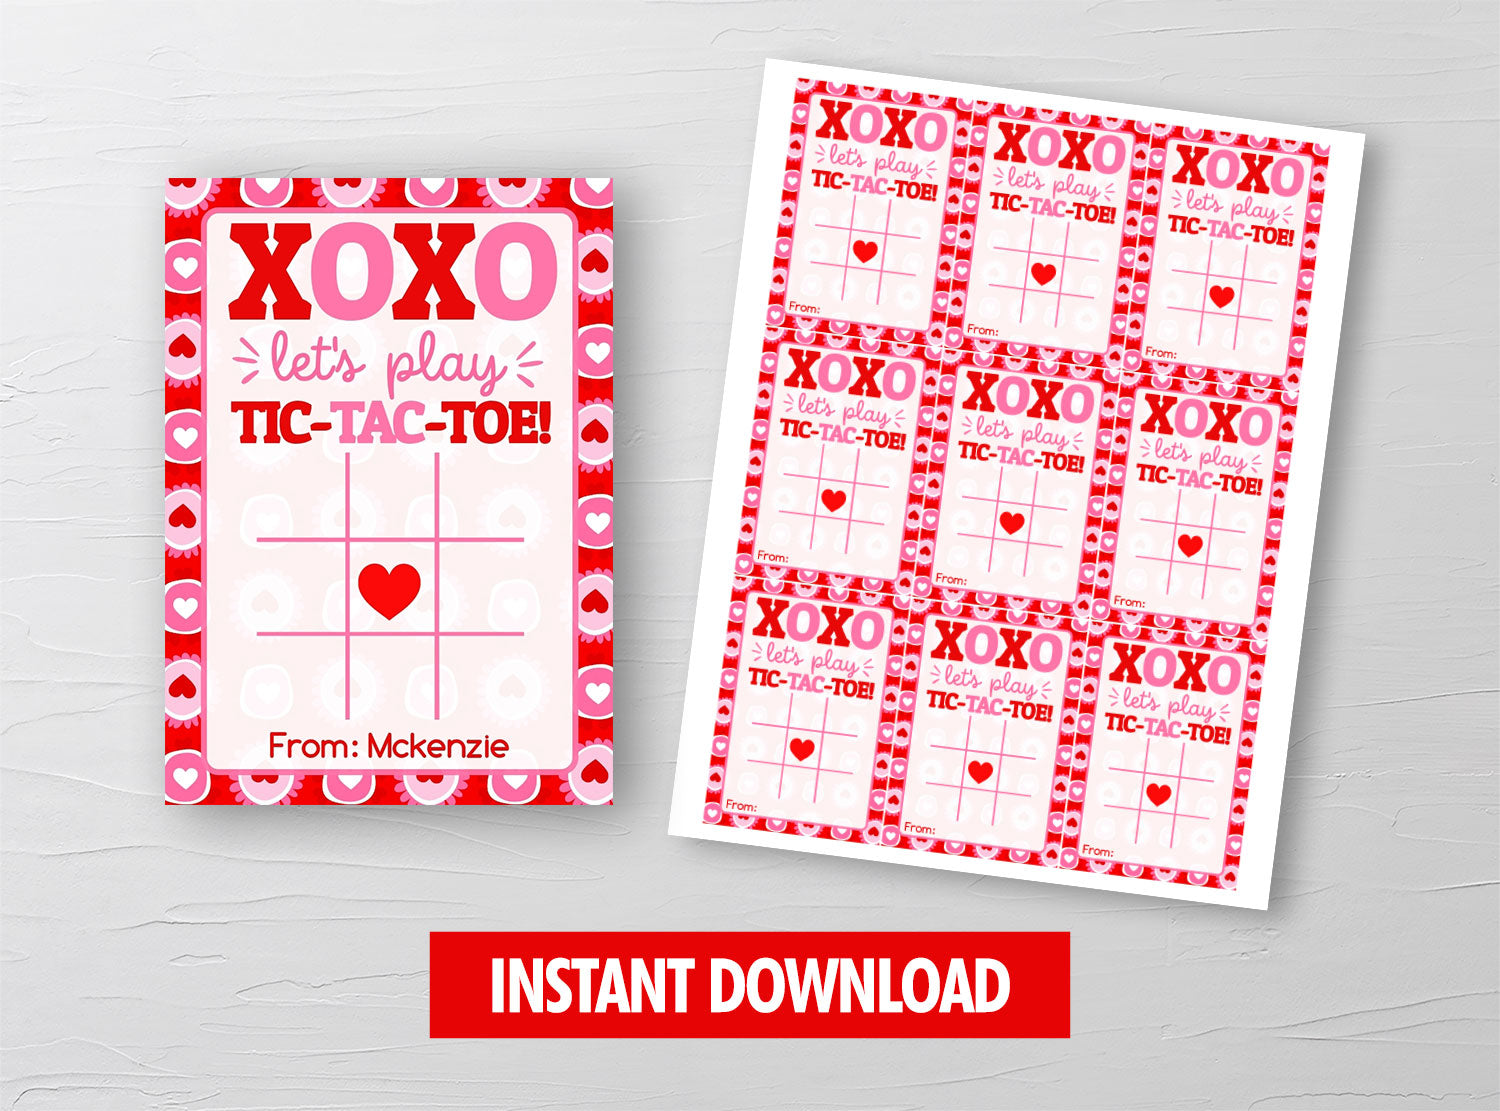 Tic Tac Toe Game Valentine Card, Xoxo Valentine Tag, School Exchange Ideas, INSTANT DOWNLOAD - TitaTipsPrintables